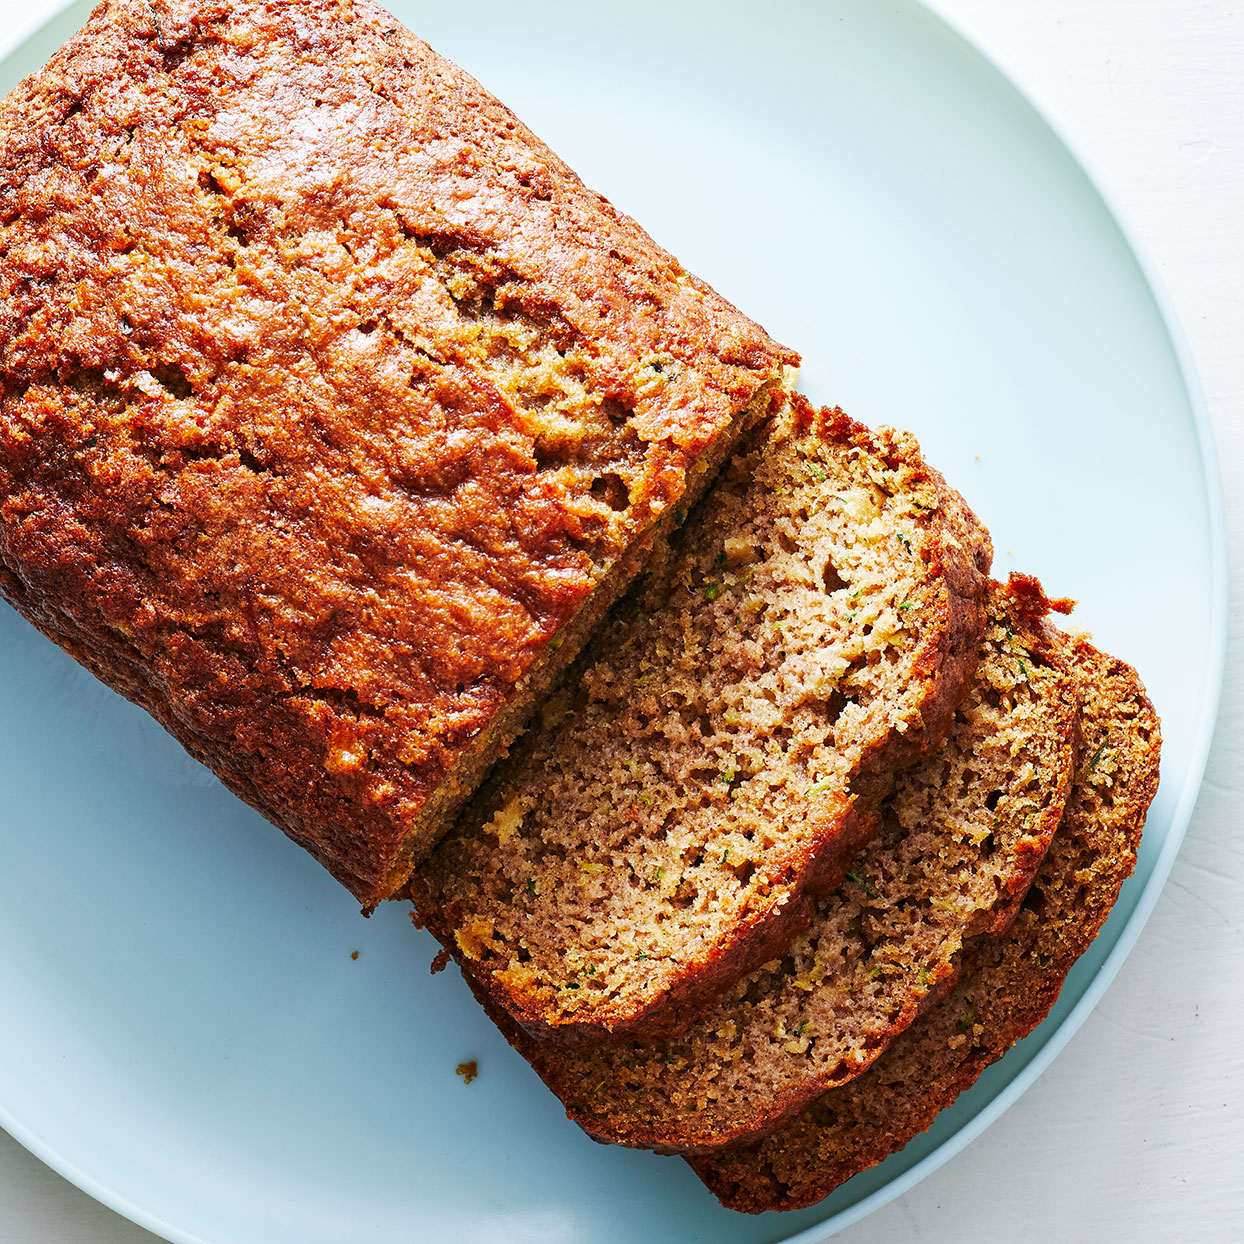 Zucchini-Pineapple Bread Trusted Brands